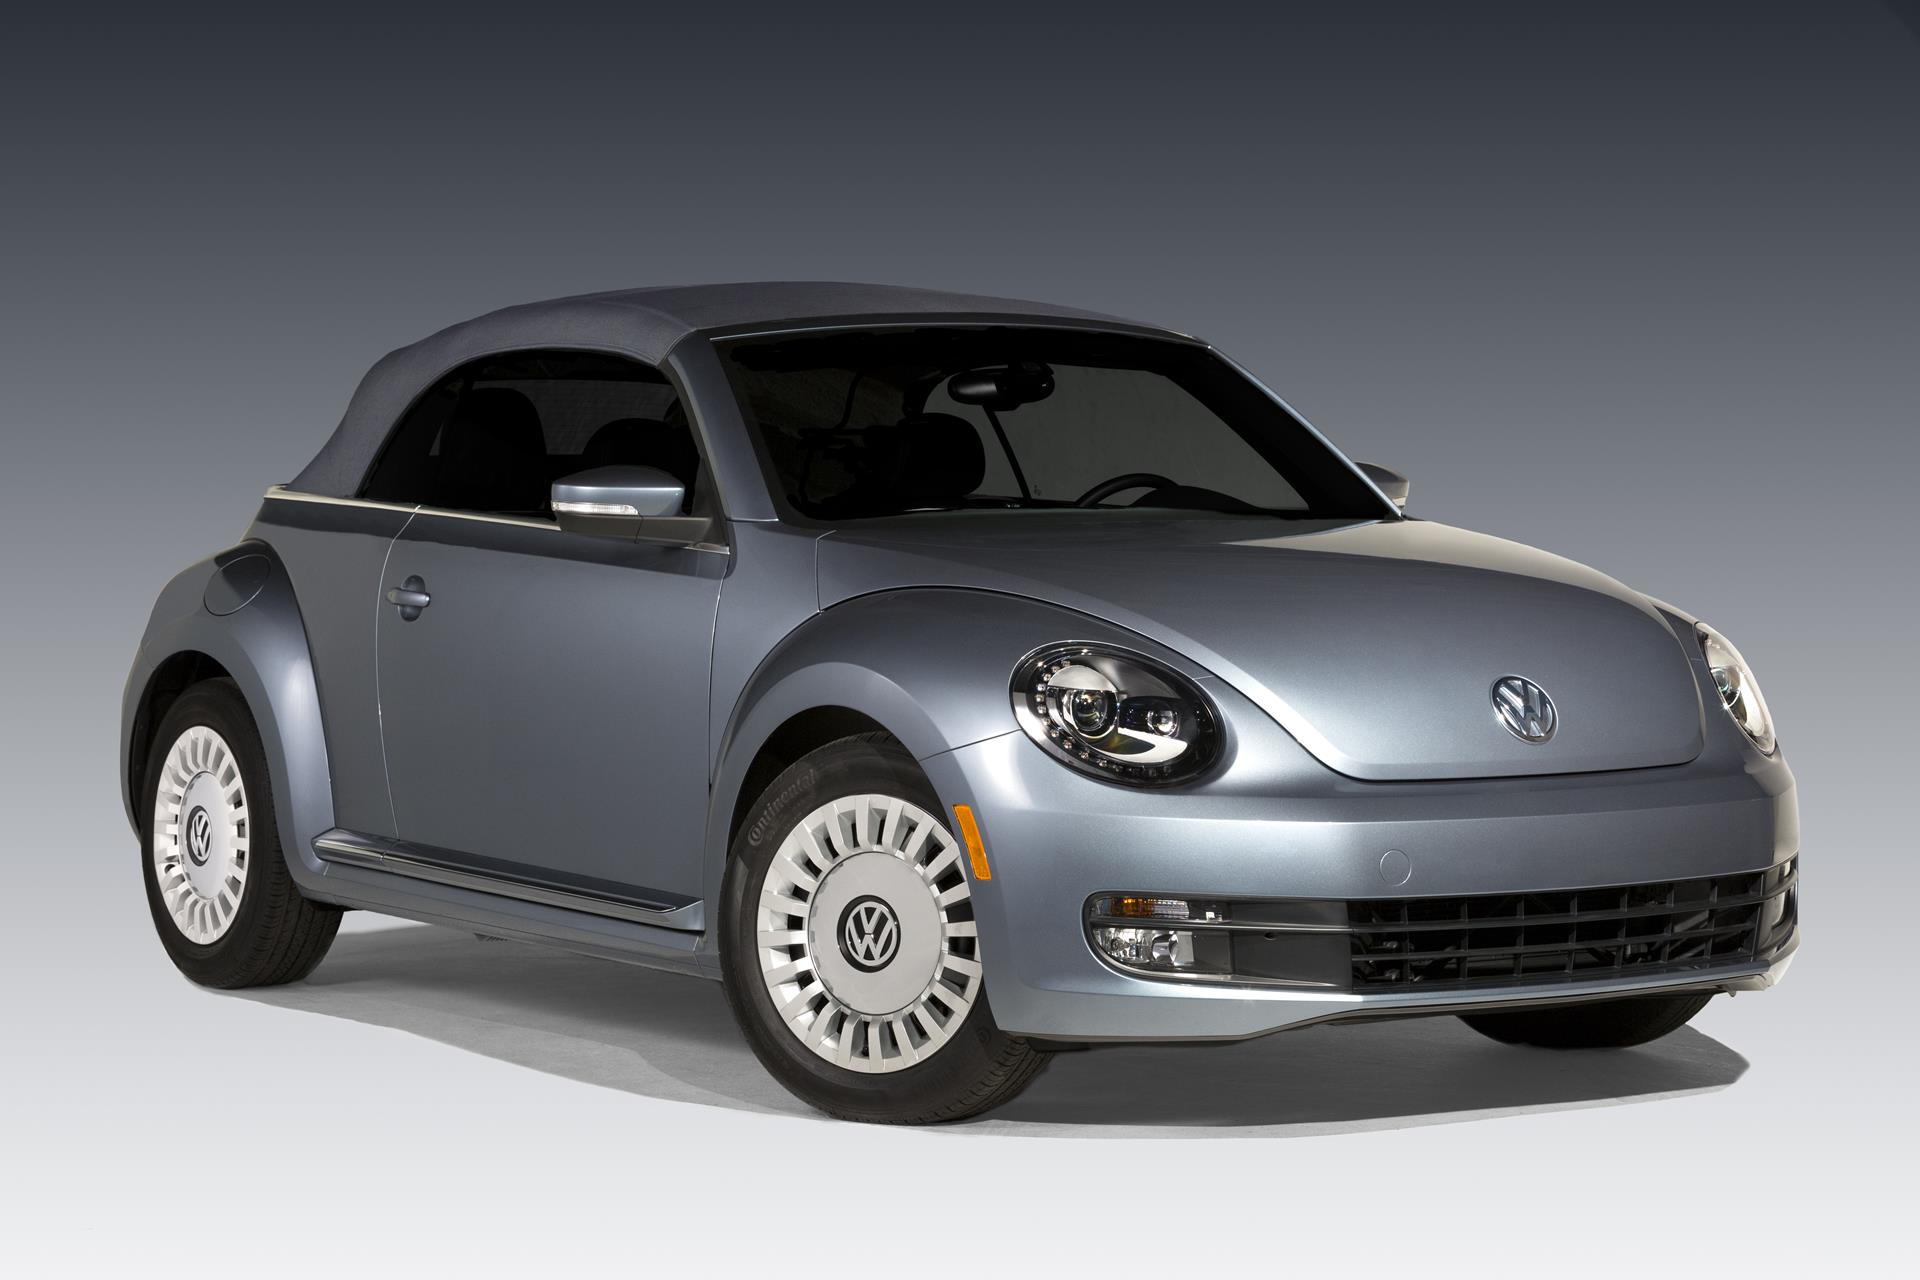 Vw Beetle Fender Edition Wallpaper